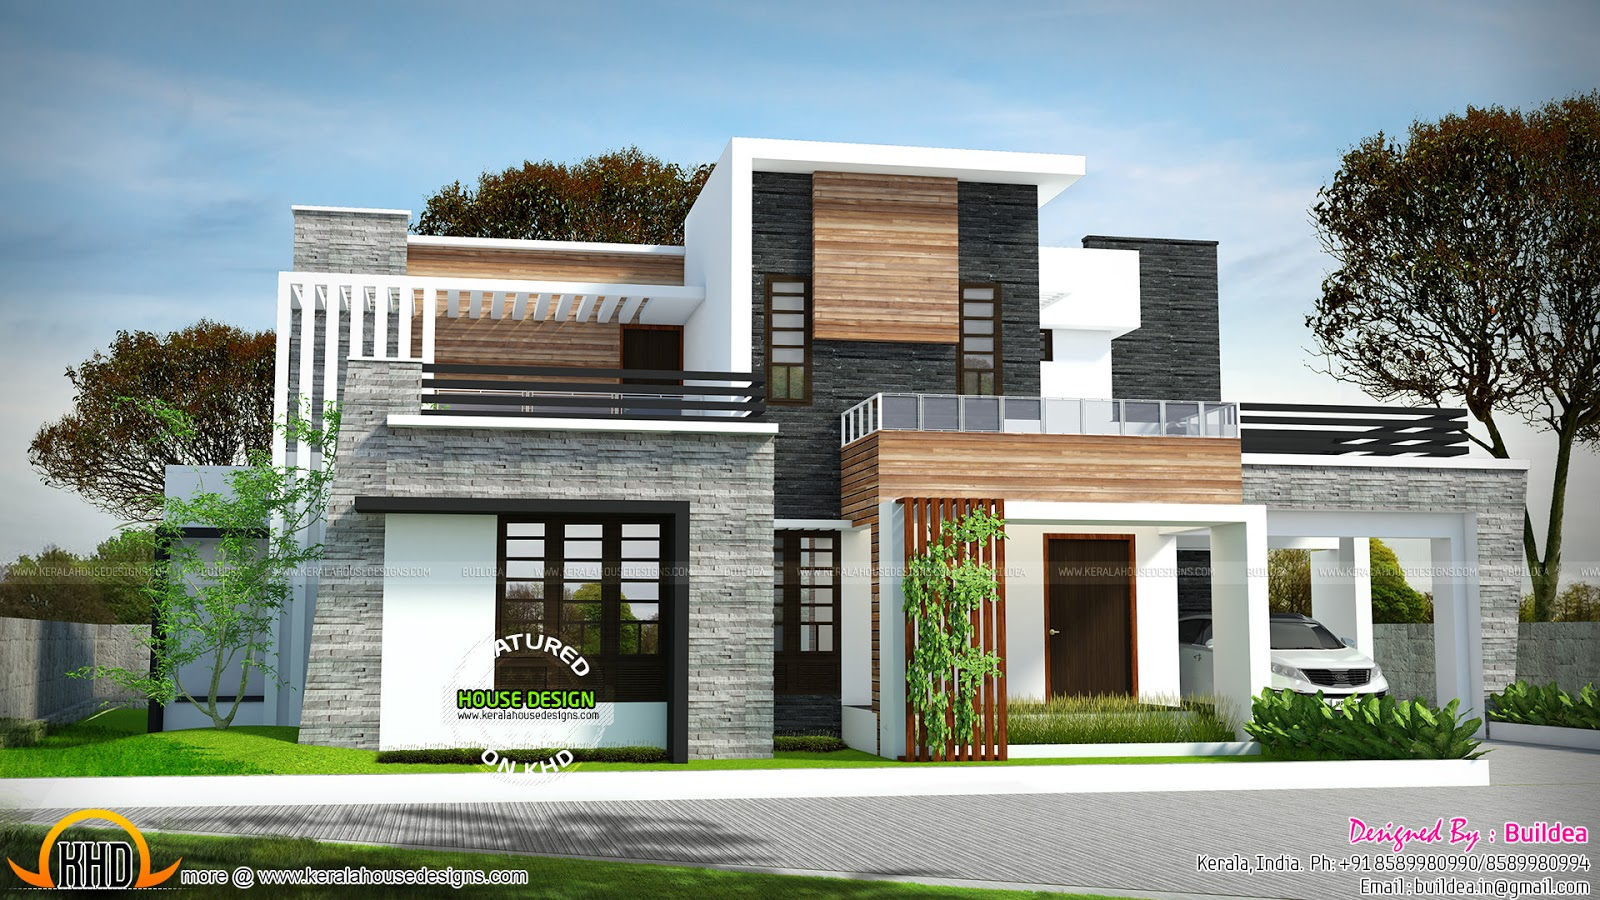 2729 sq ft 4 bedroom flat roof modern house kerala home for 4 bedroom modern house plans